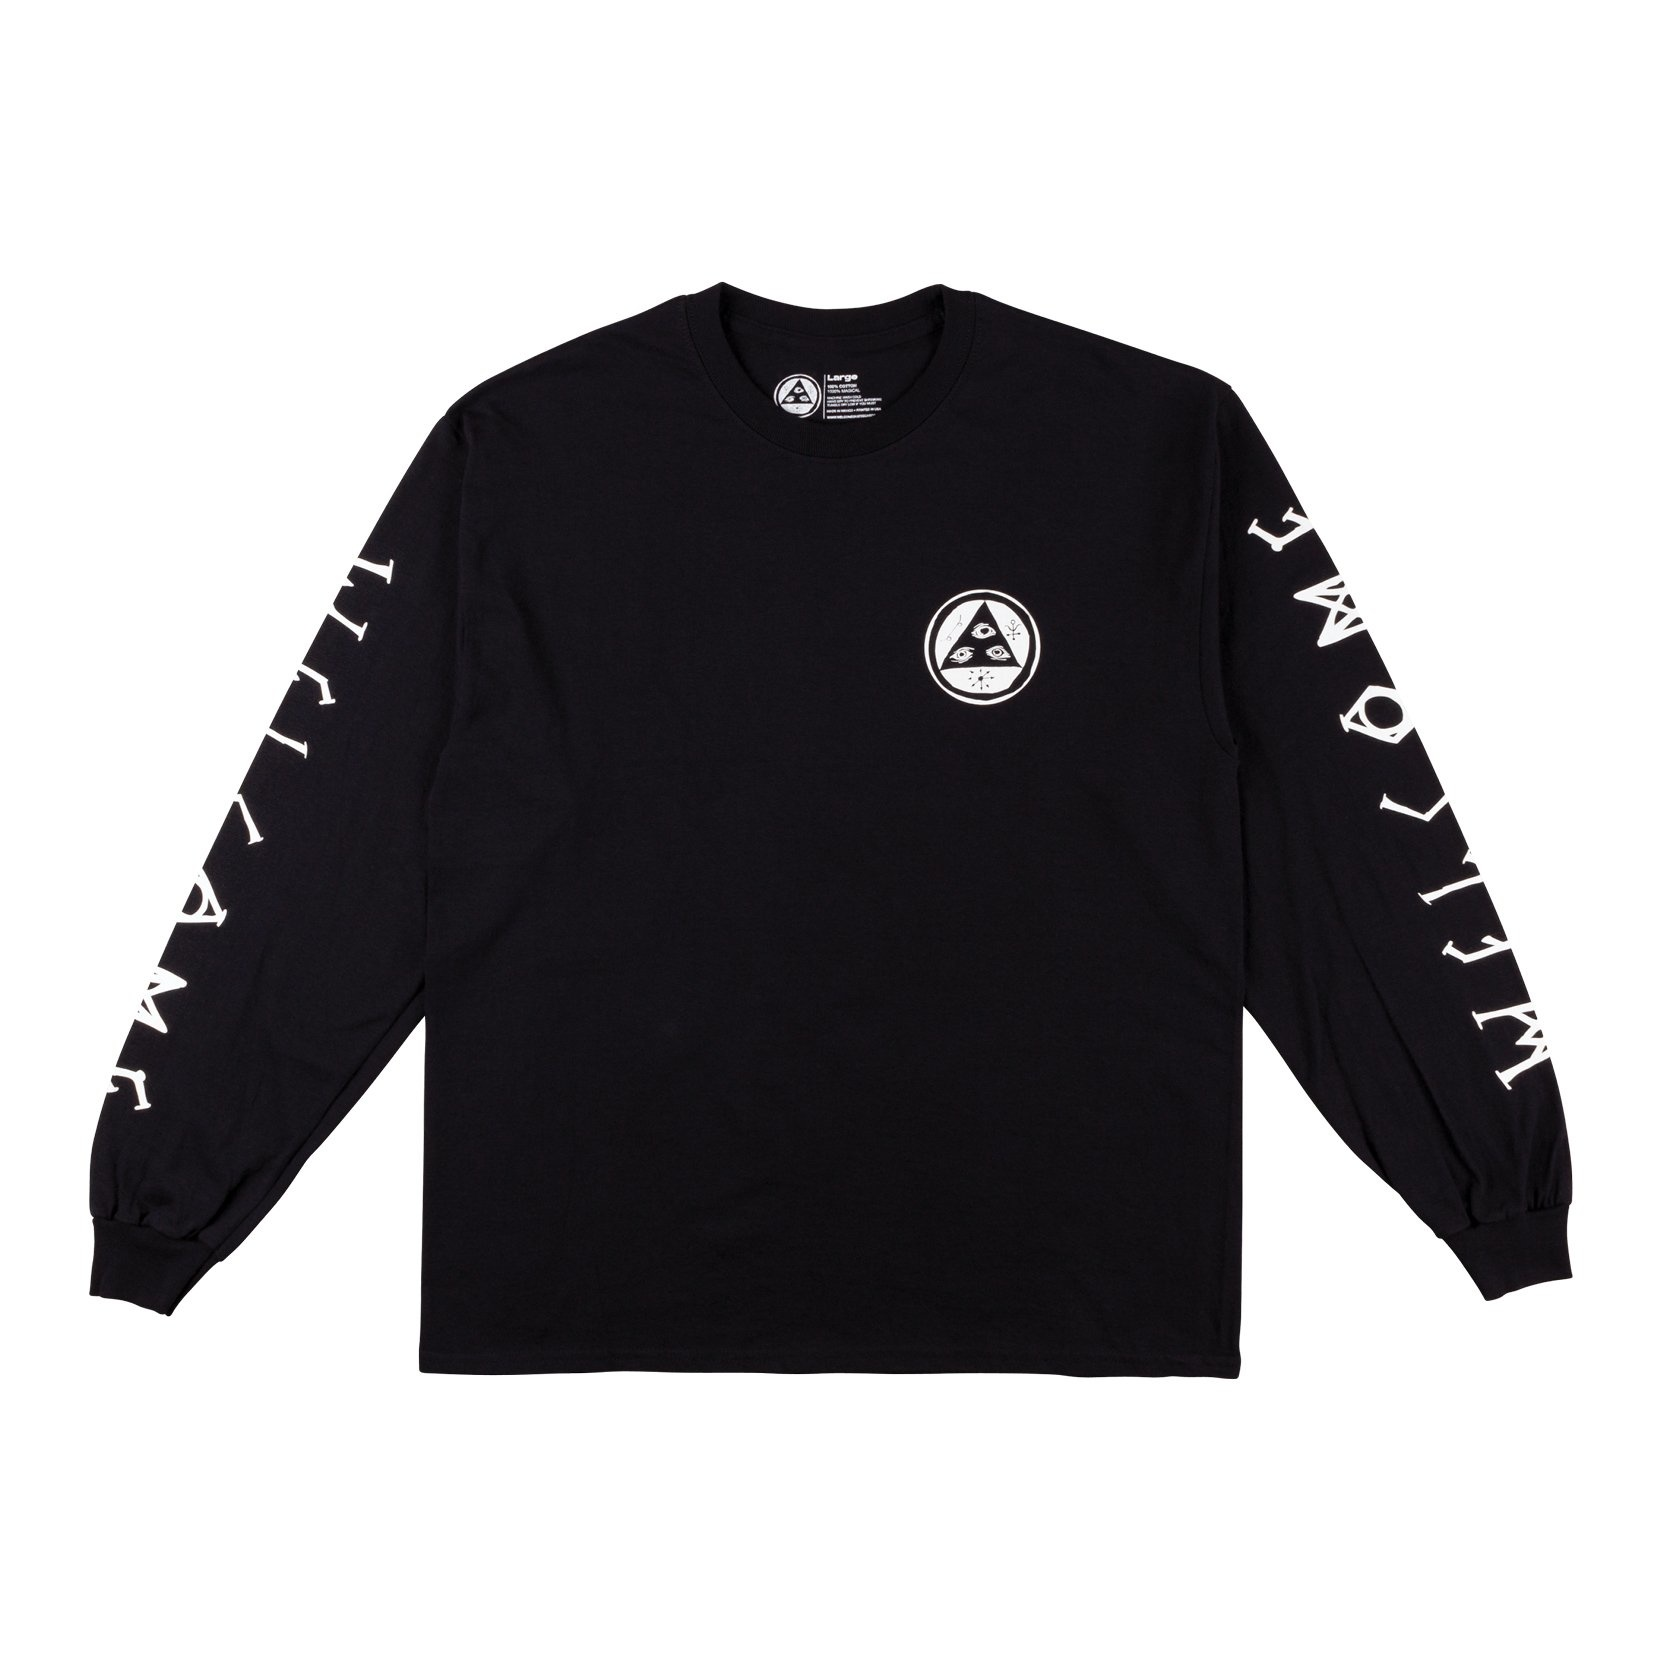 Tali-Scrawl Long Sleeve Tee - Black/White